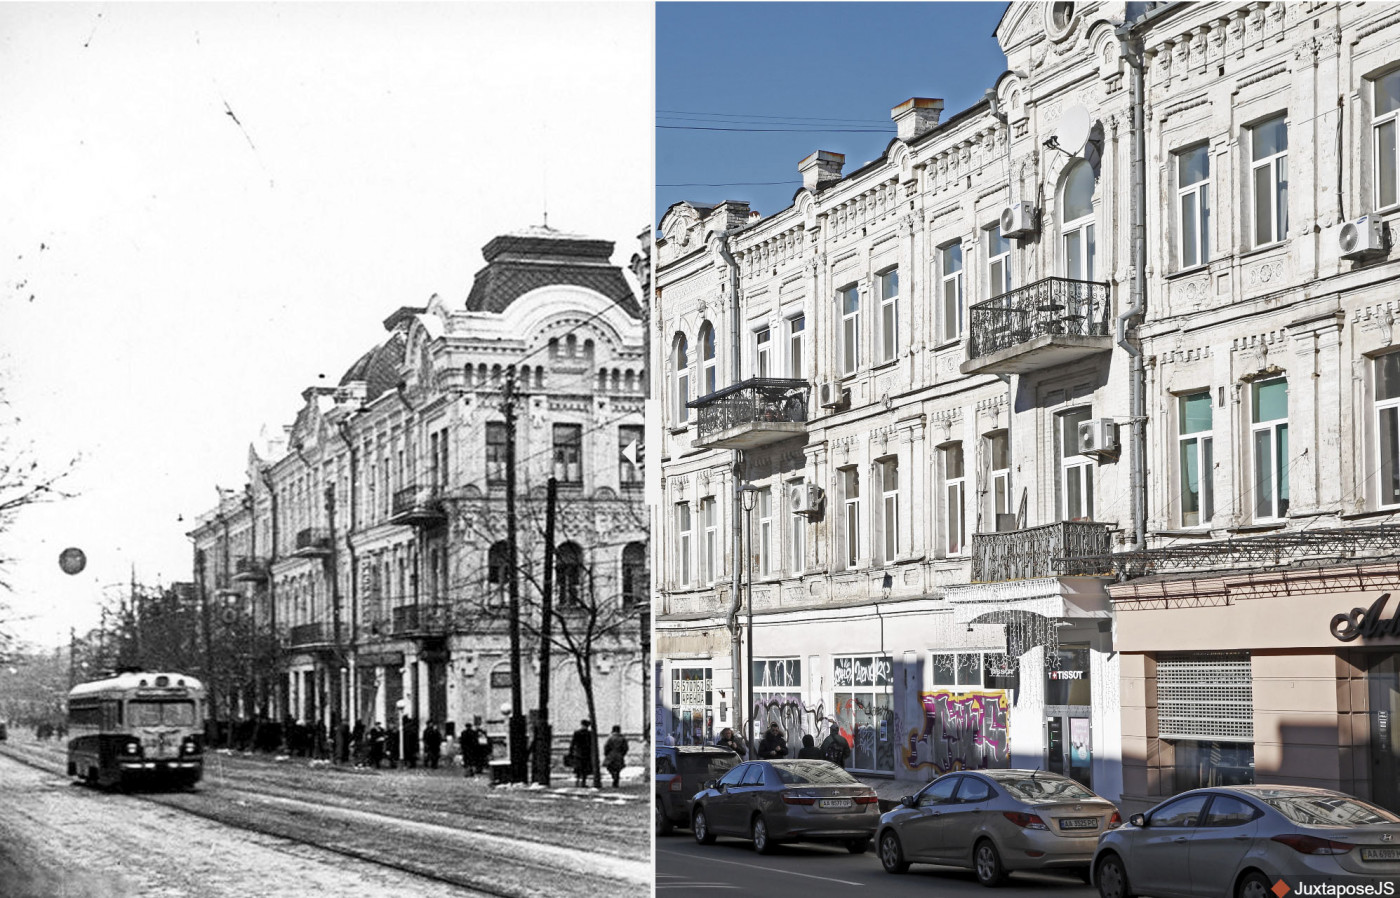 Intersection of Sahaydachnoho and Ihorevska streets as seen in 1956 and 2019